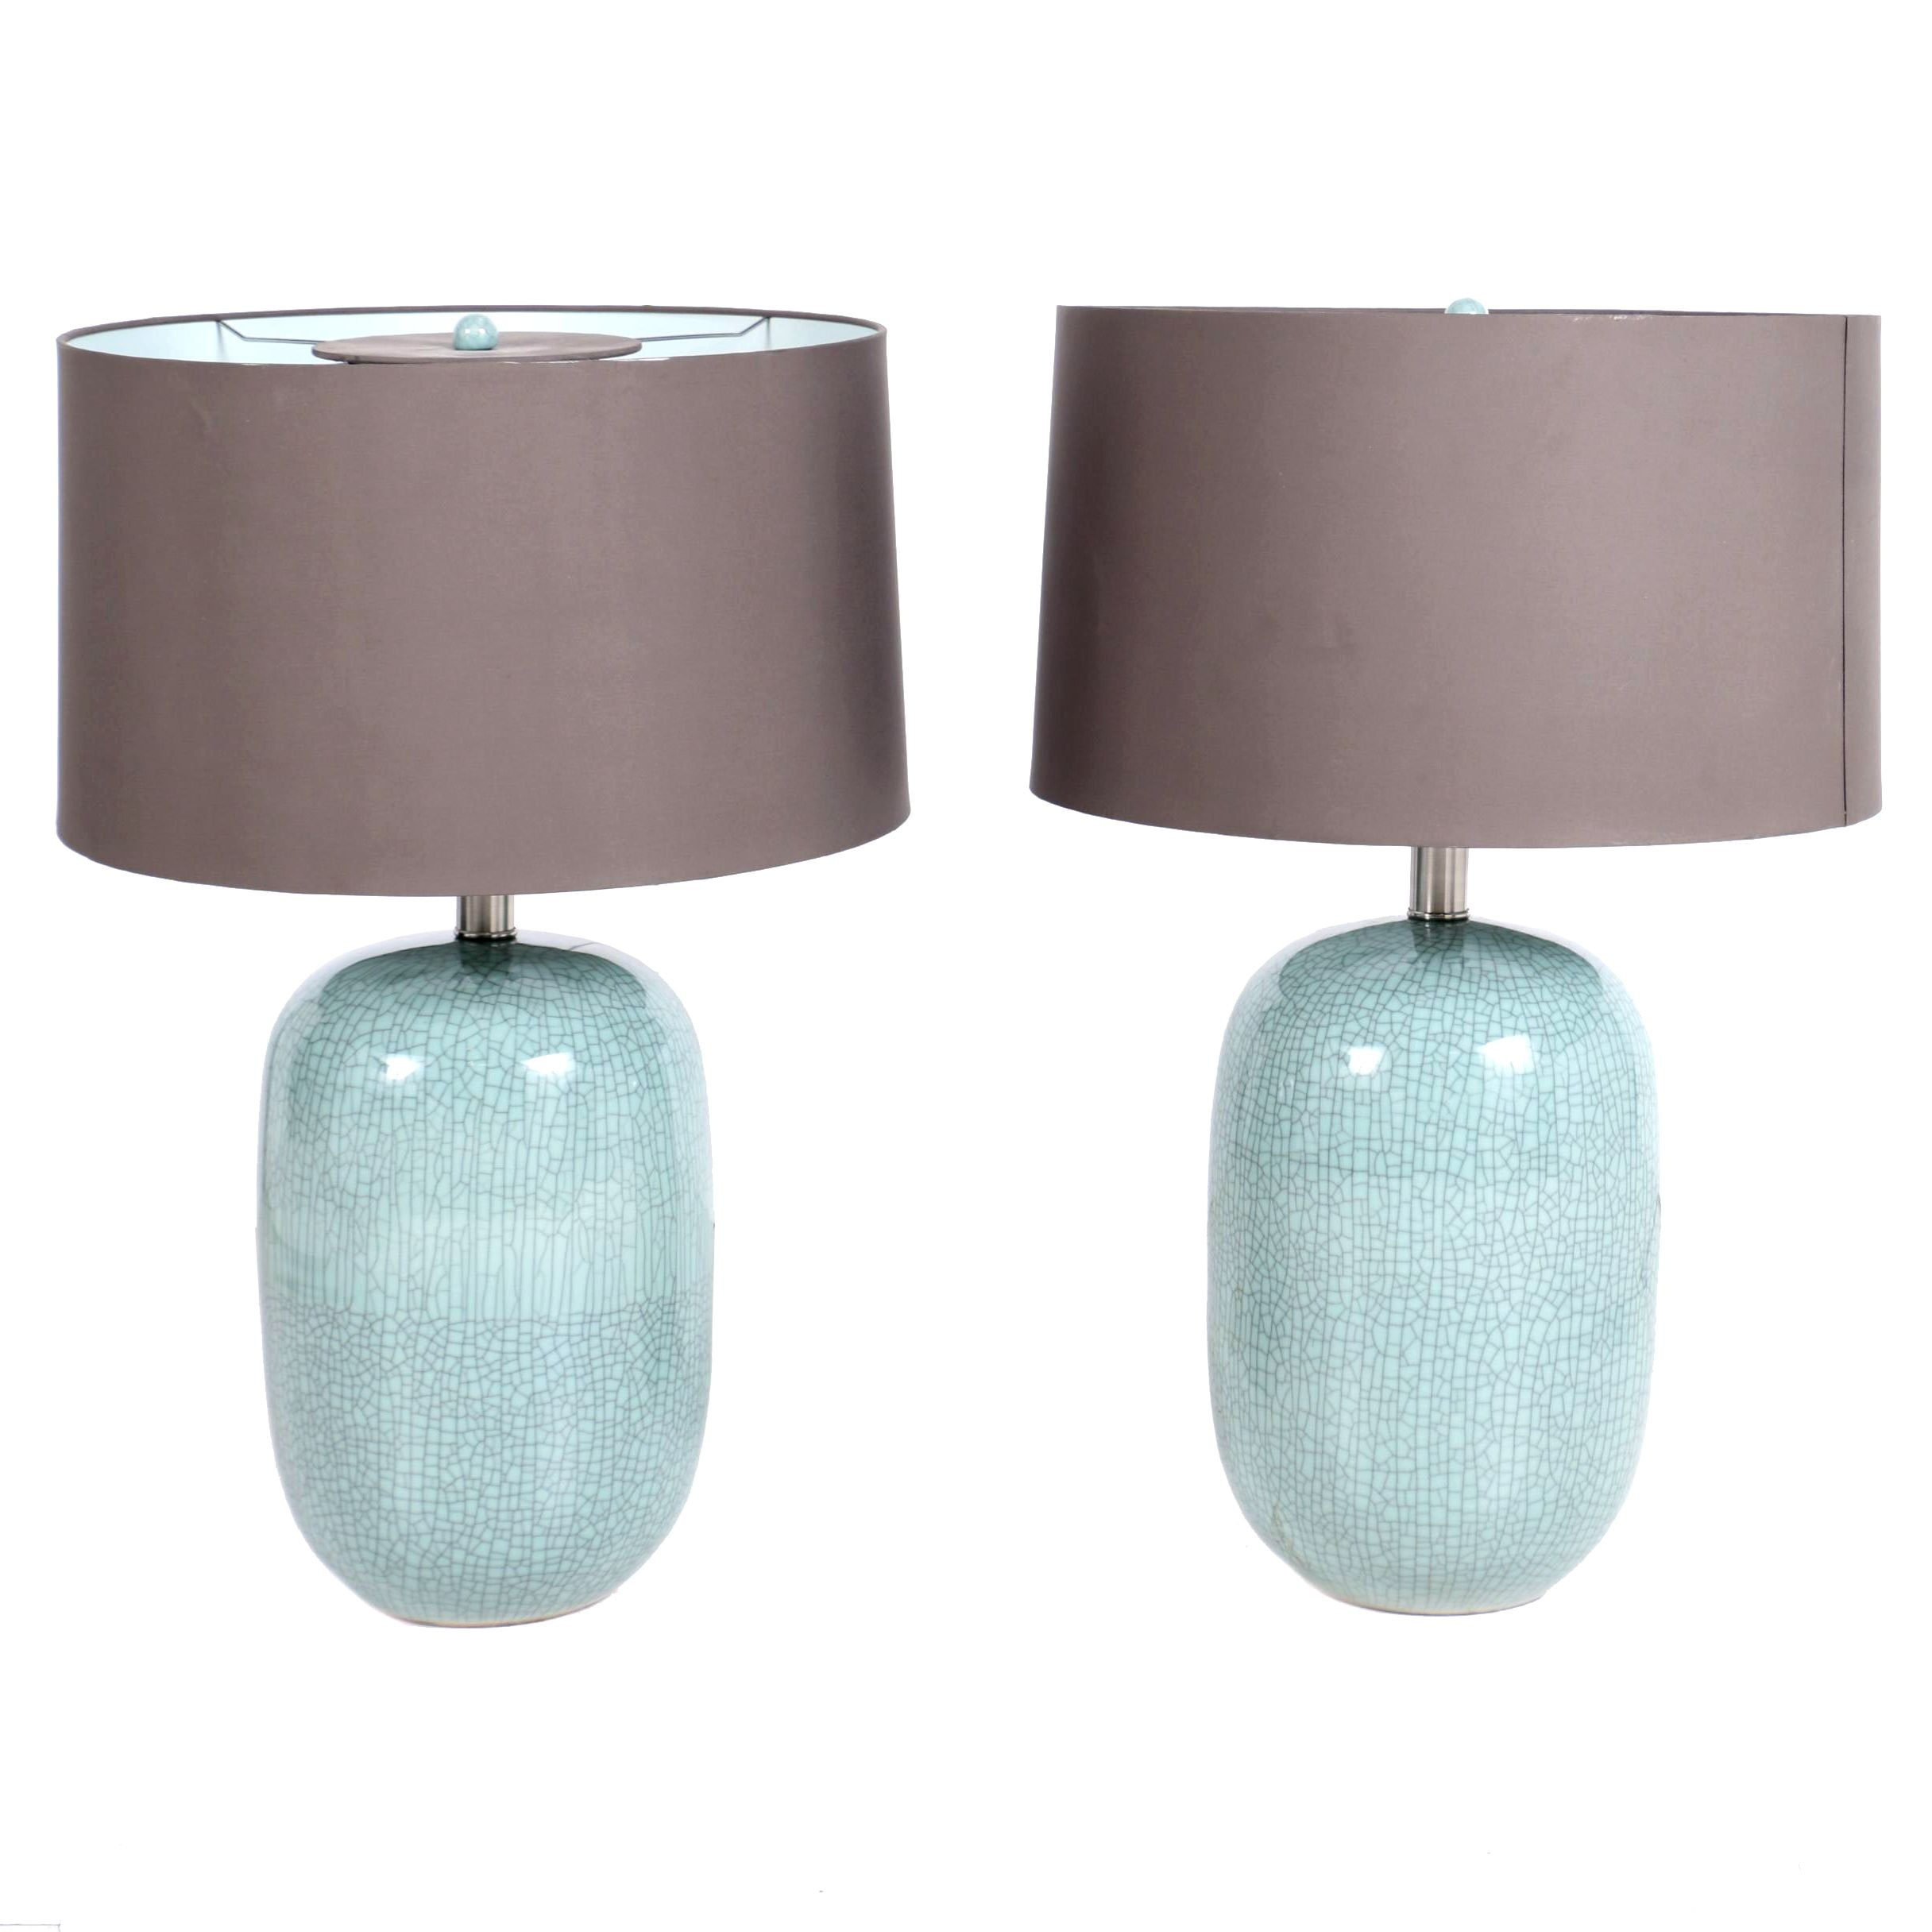 Pair of Crackle Blue Table Lamps with Oversized Shades